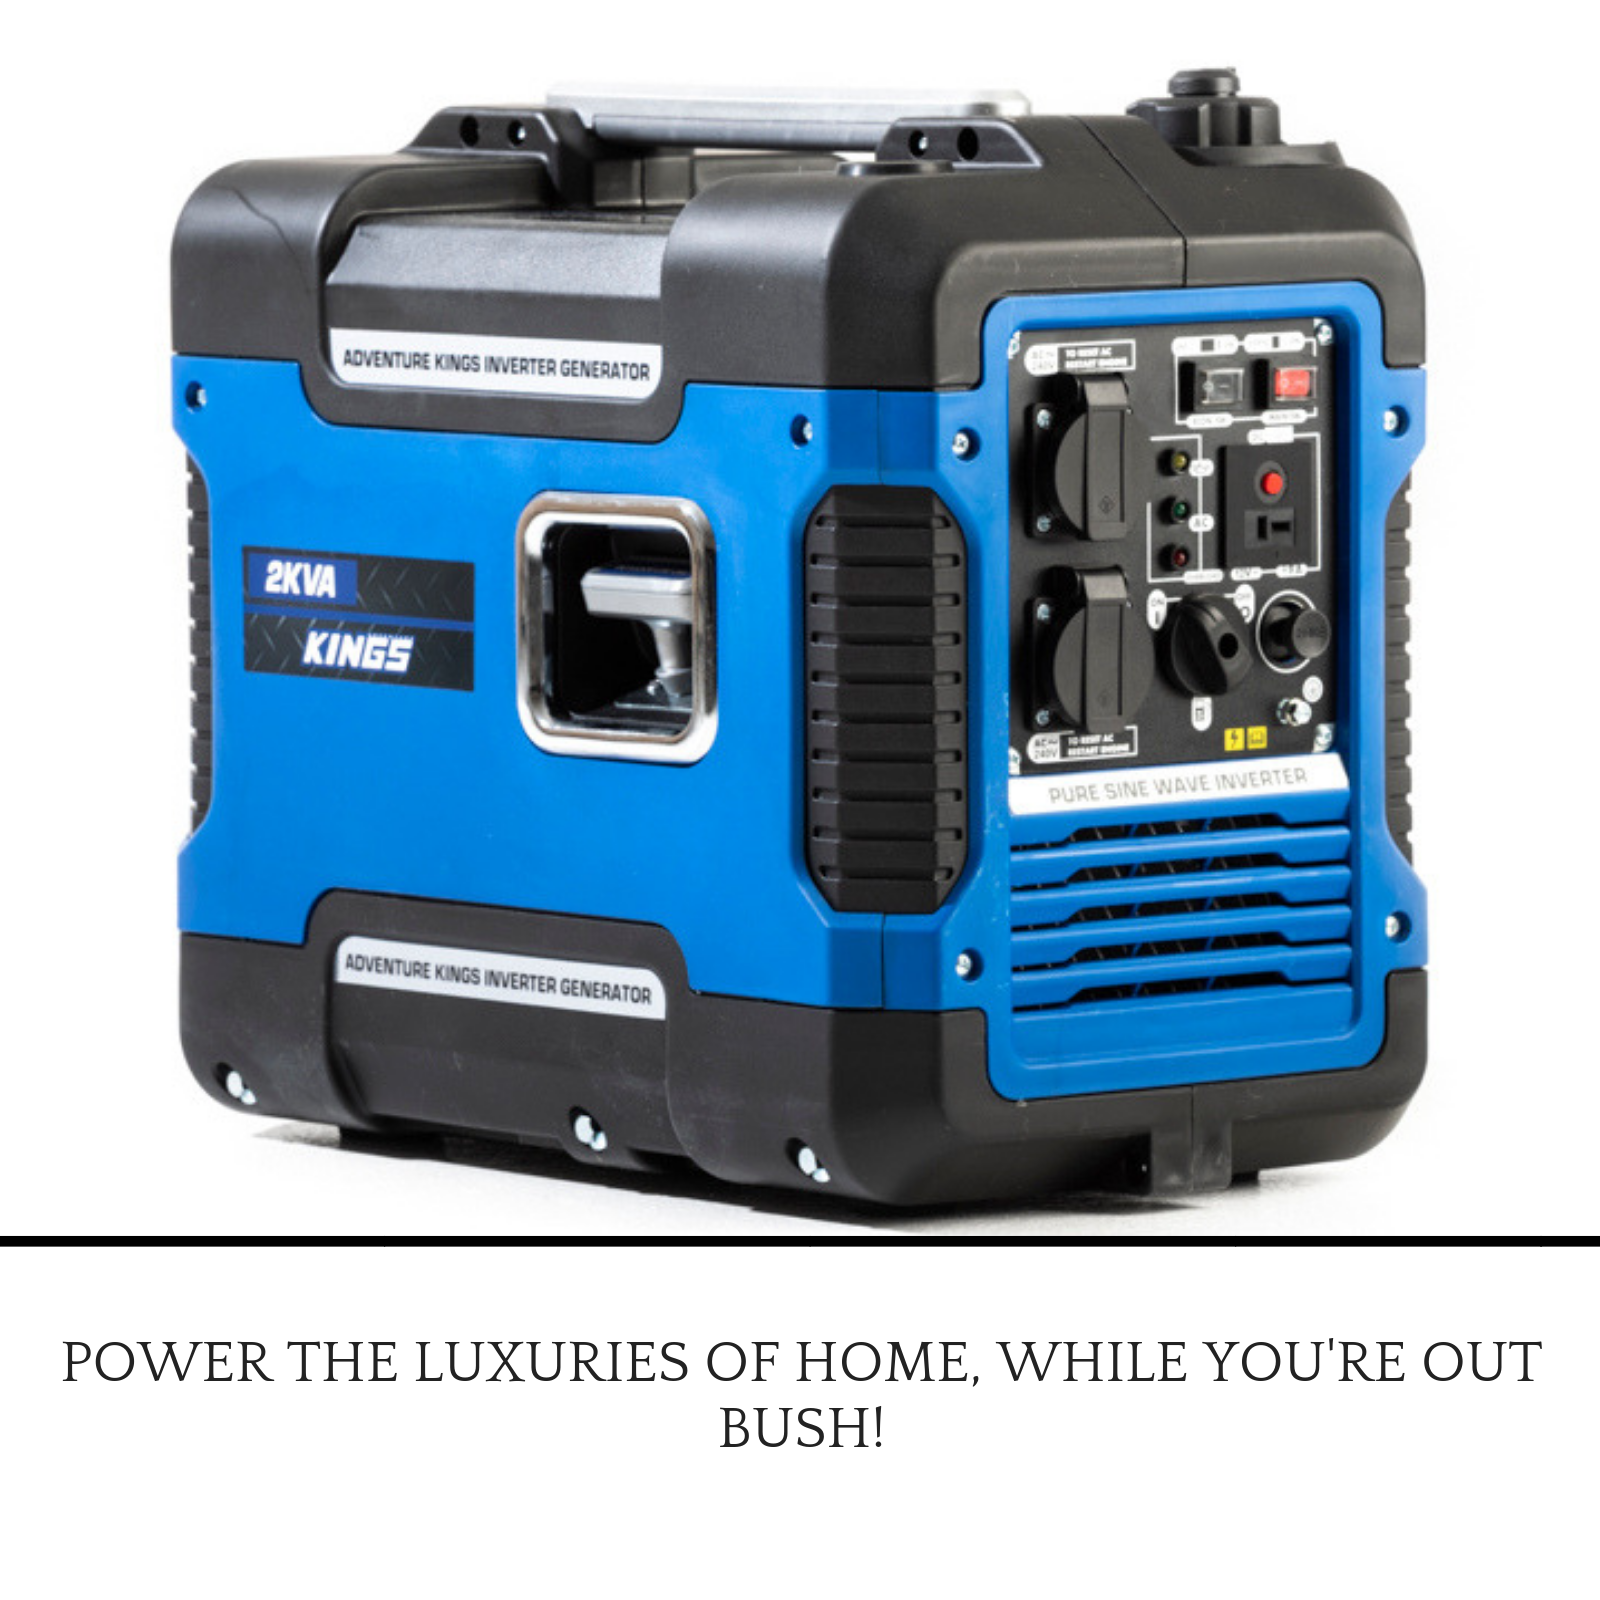 2Kva Kings Generator details about adventure kings 2kva generator closed case | 79cc 4-stroke |  2000w power compact